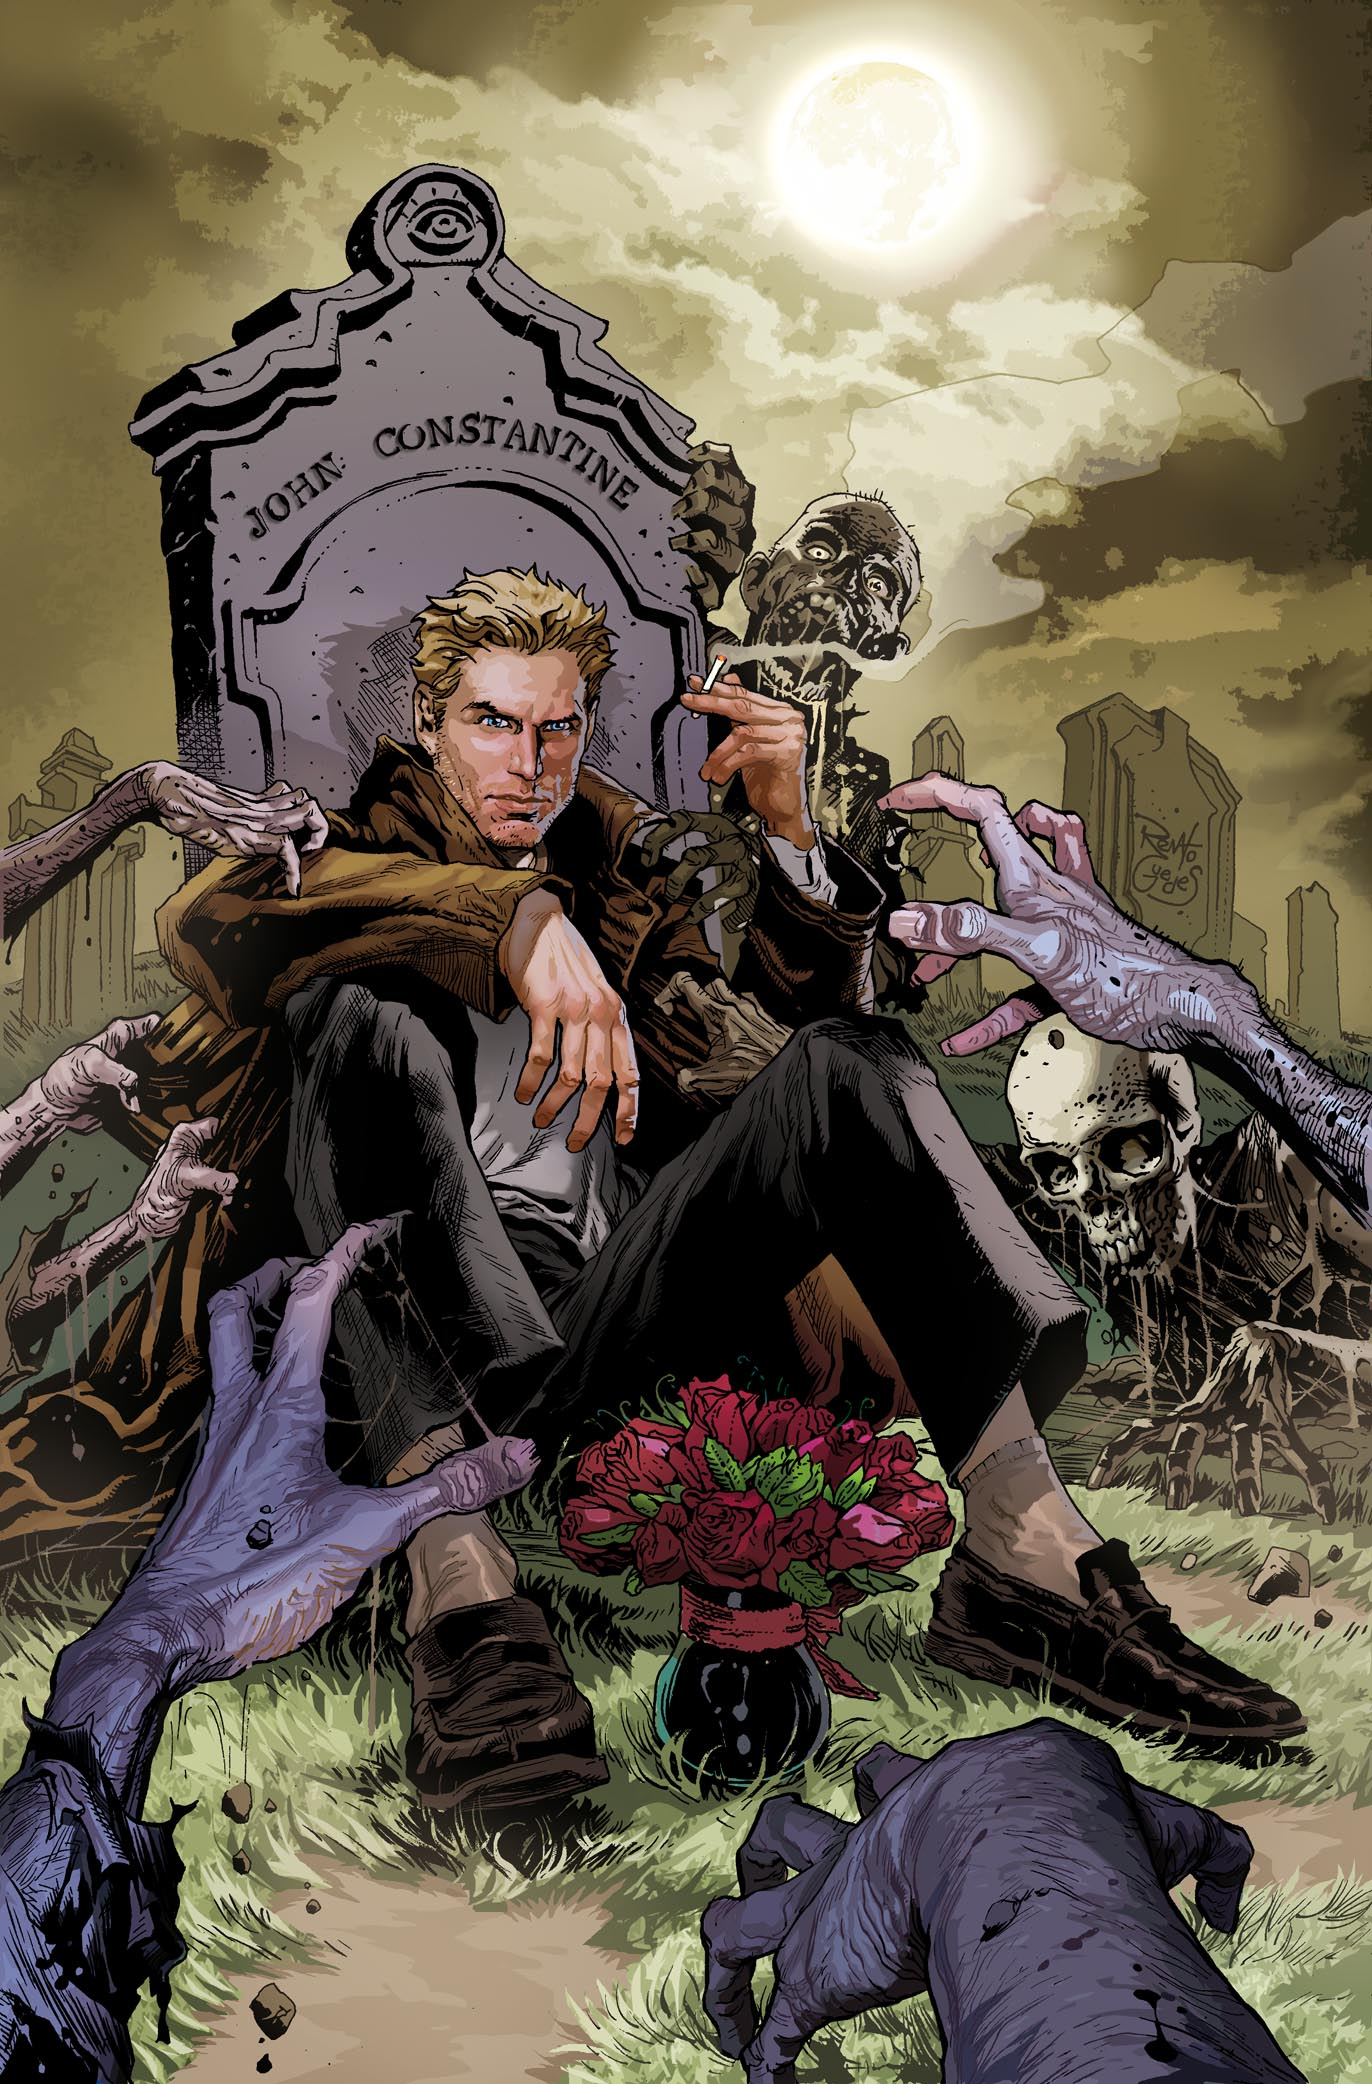 Depiction of Constantine sitting in front of his own grave surrounded by the undead.